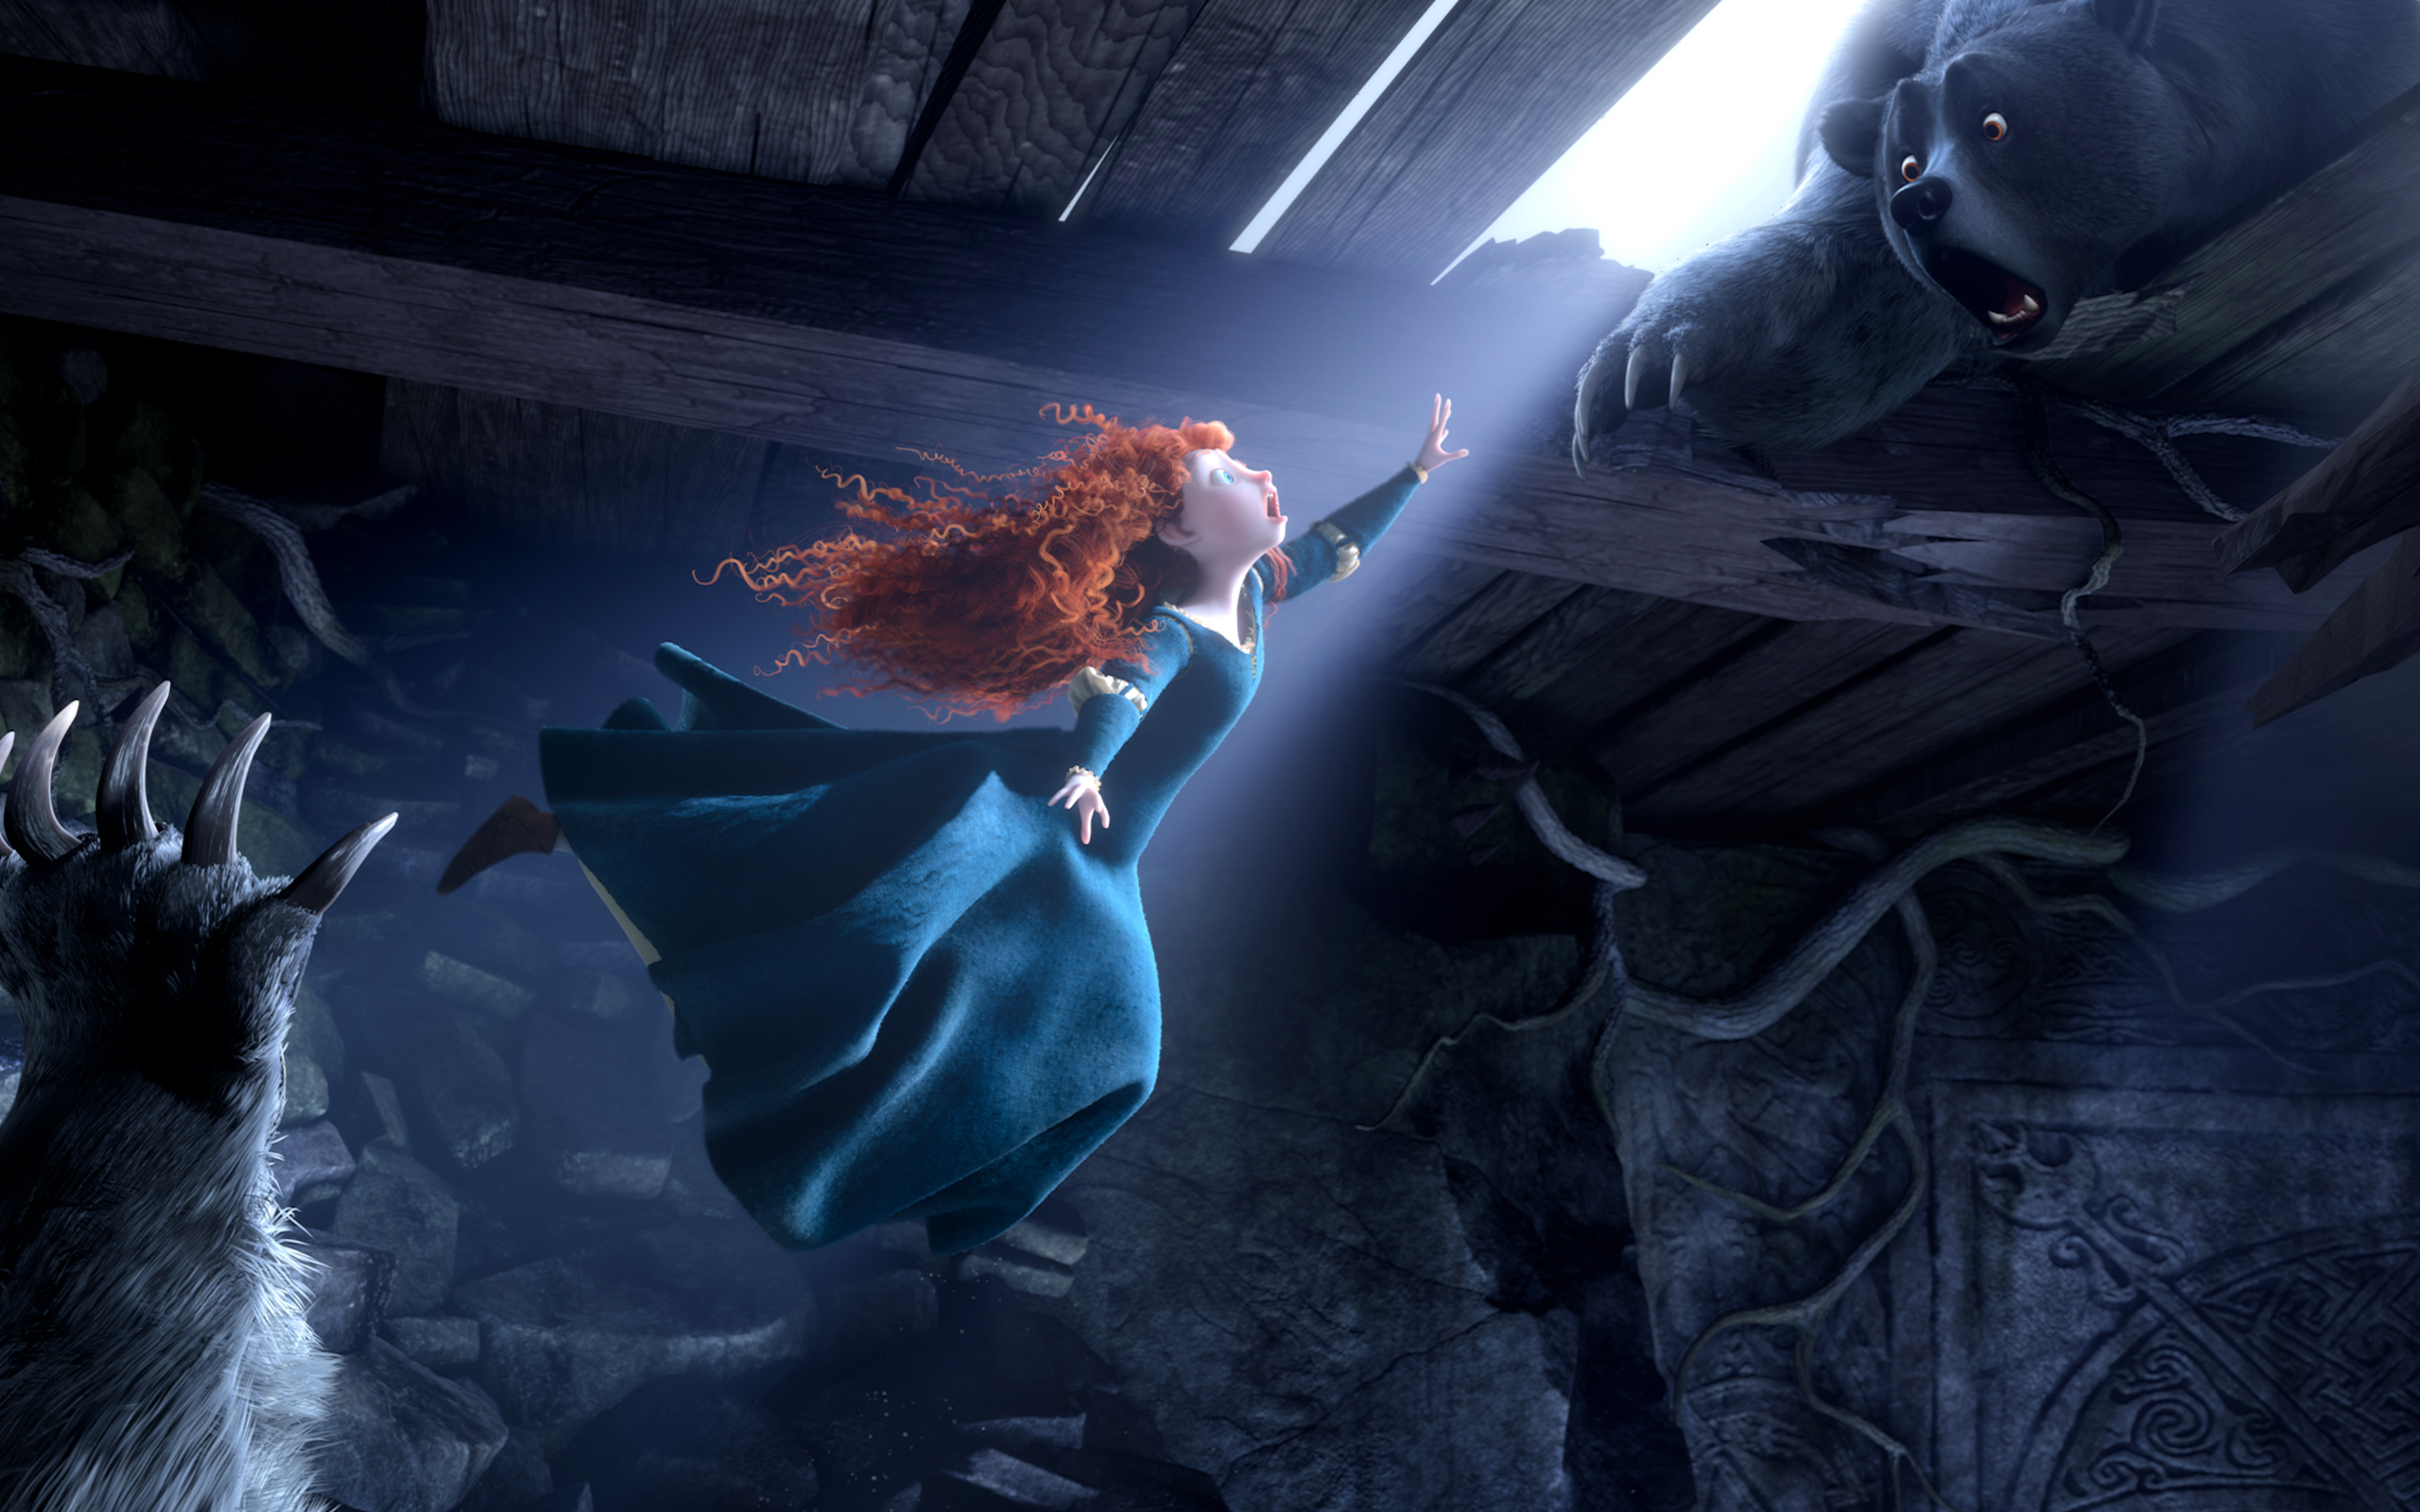 Princess Merida Brave Movie 460.12 Kb